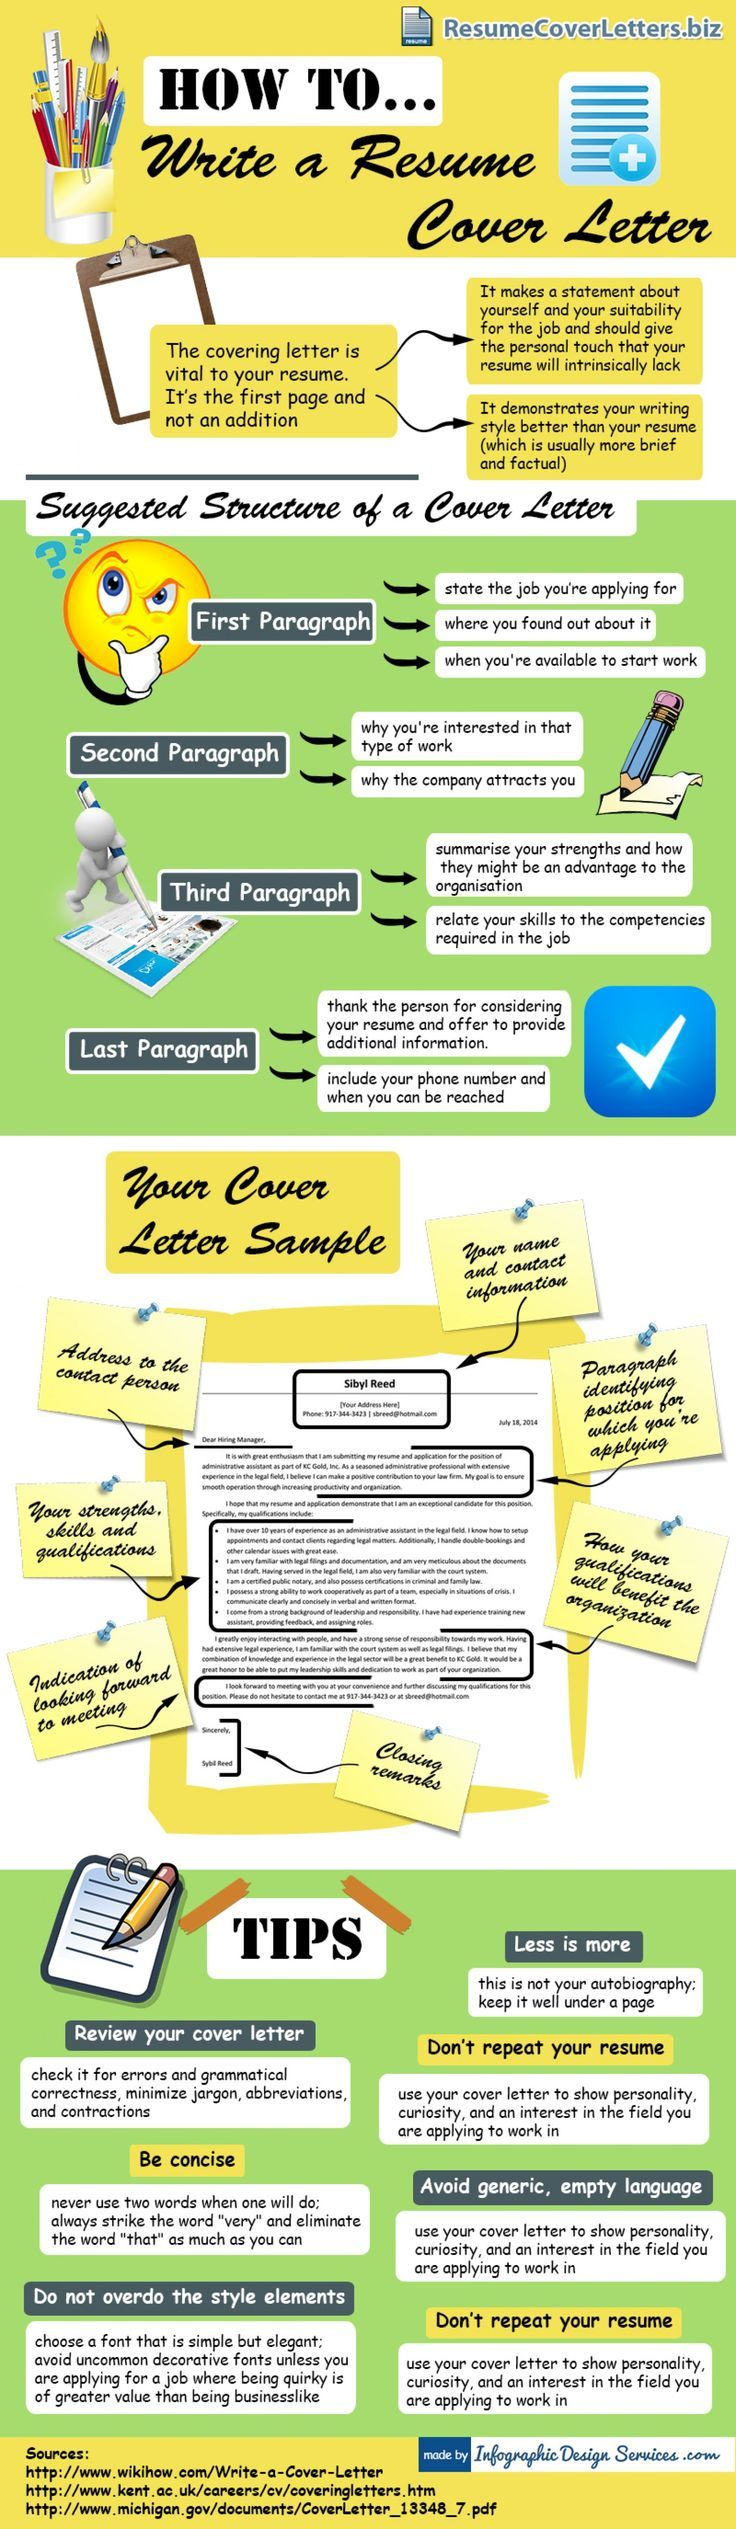 Resume Cover Letter Writing Tips Infographic